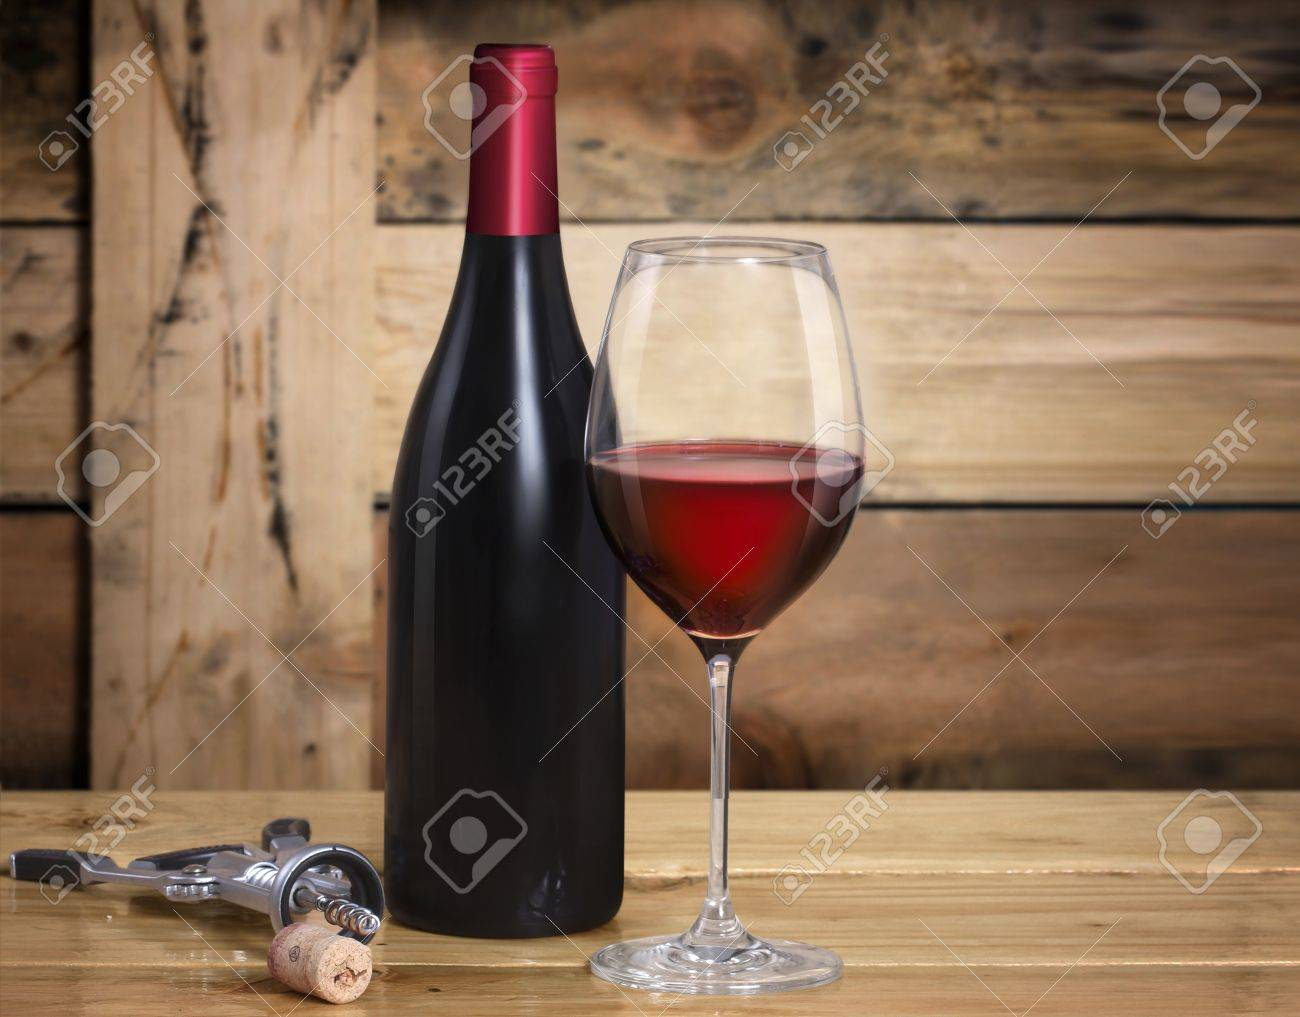 Wine glass and Bottle on wooden background Stock Photo - 16011111